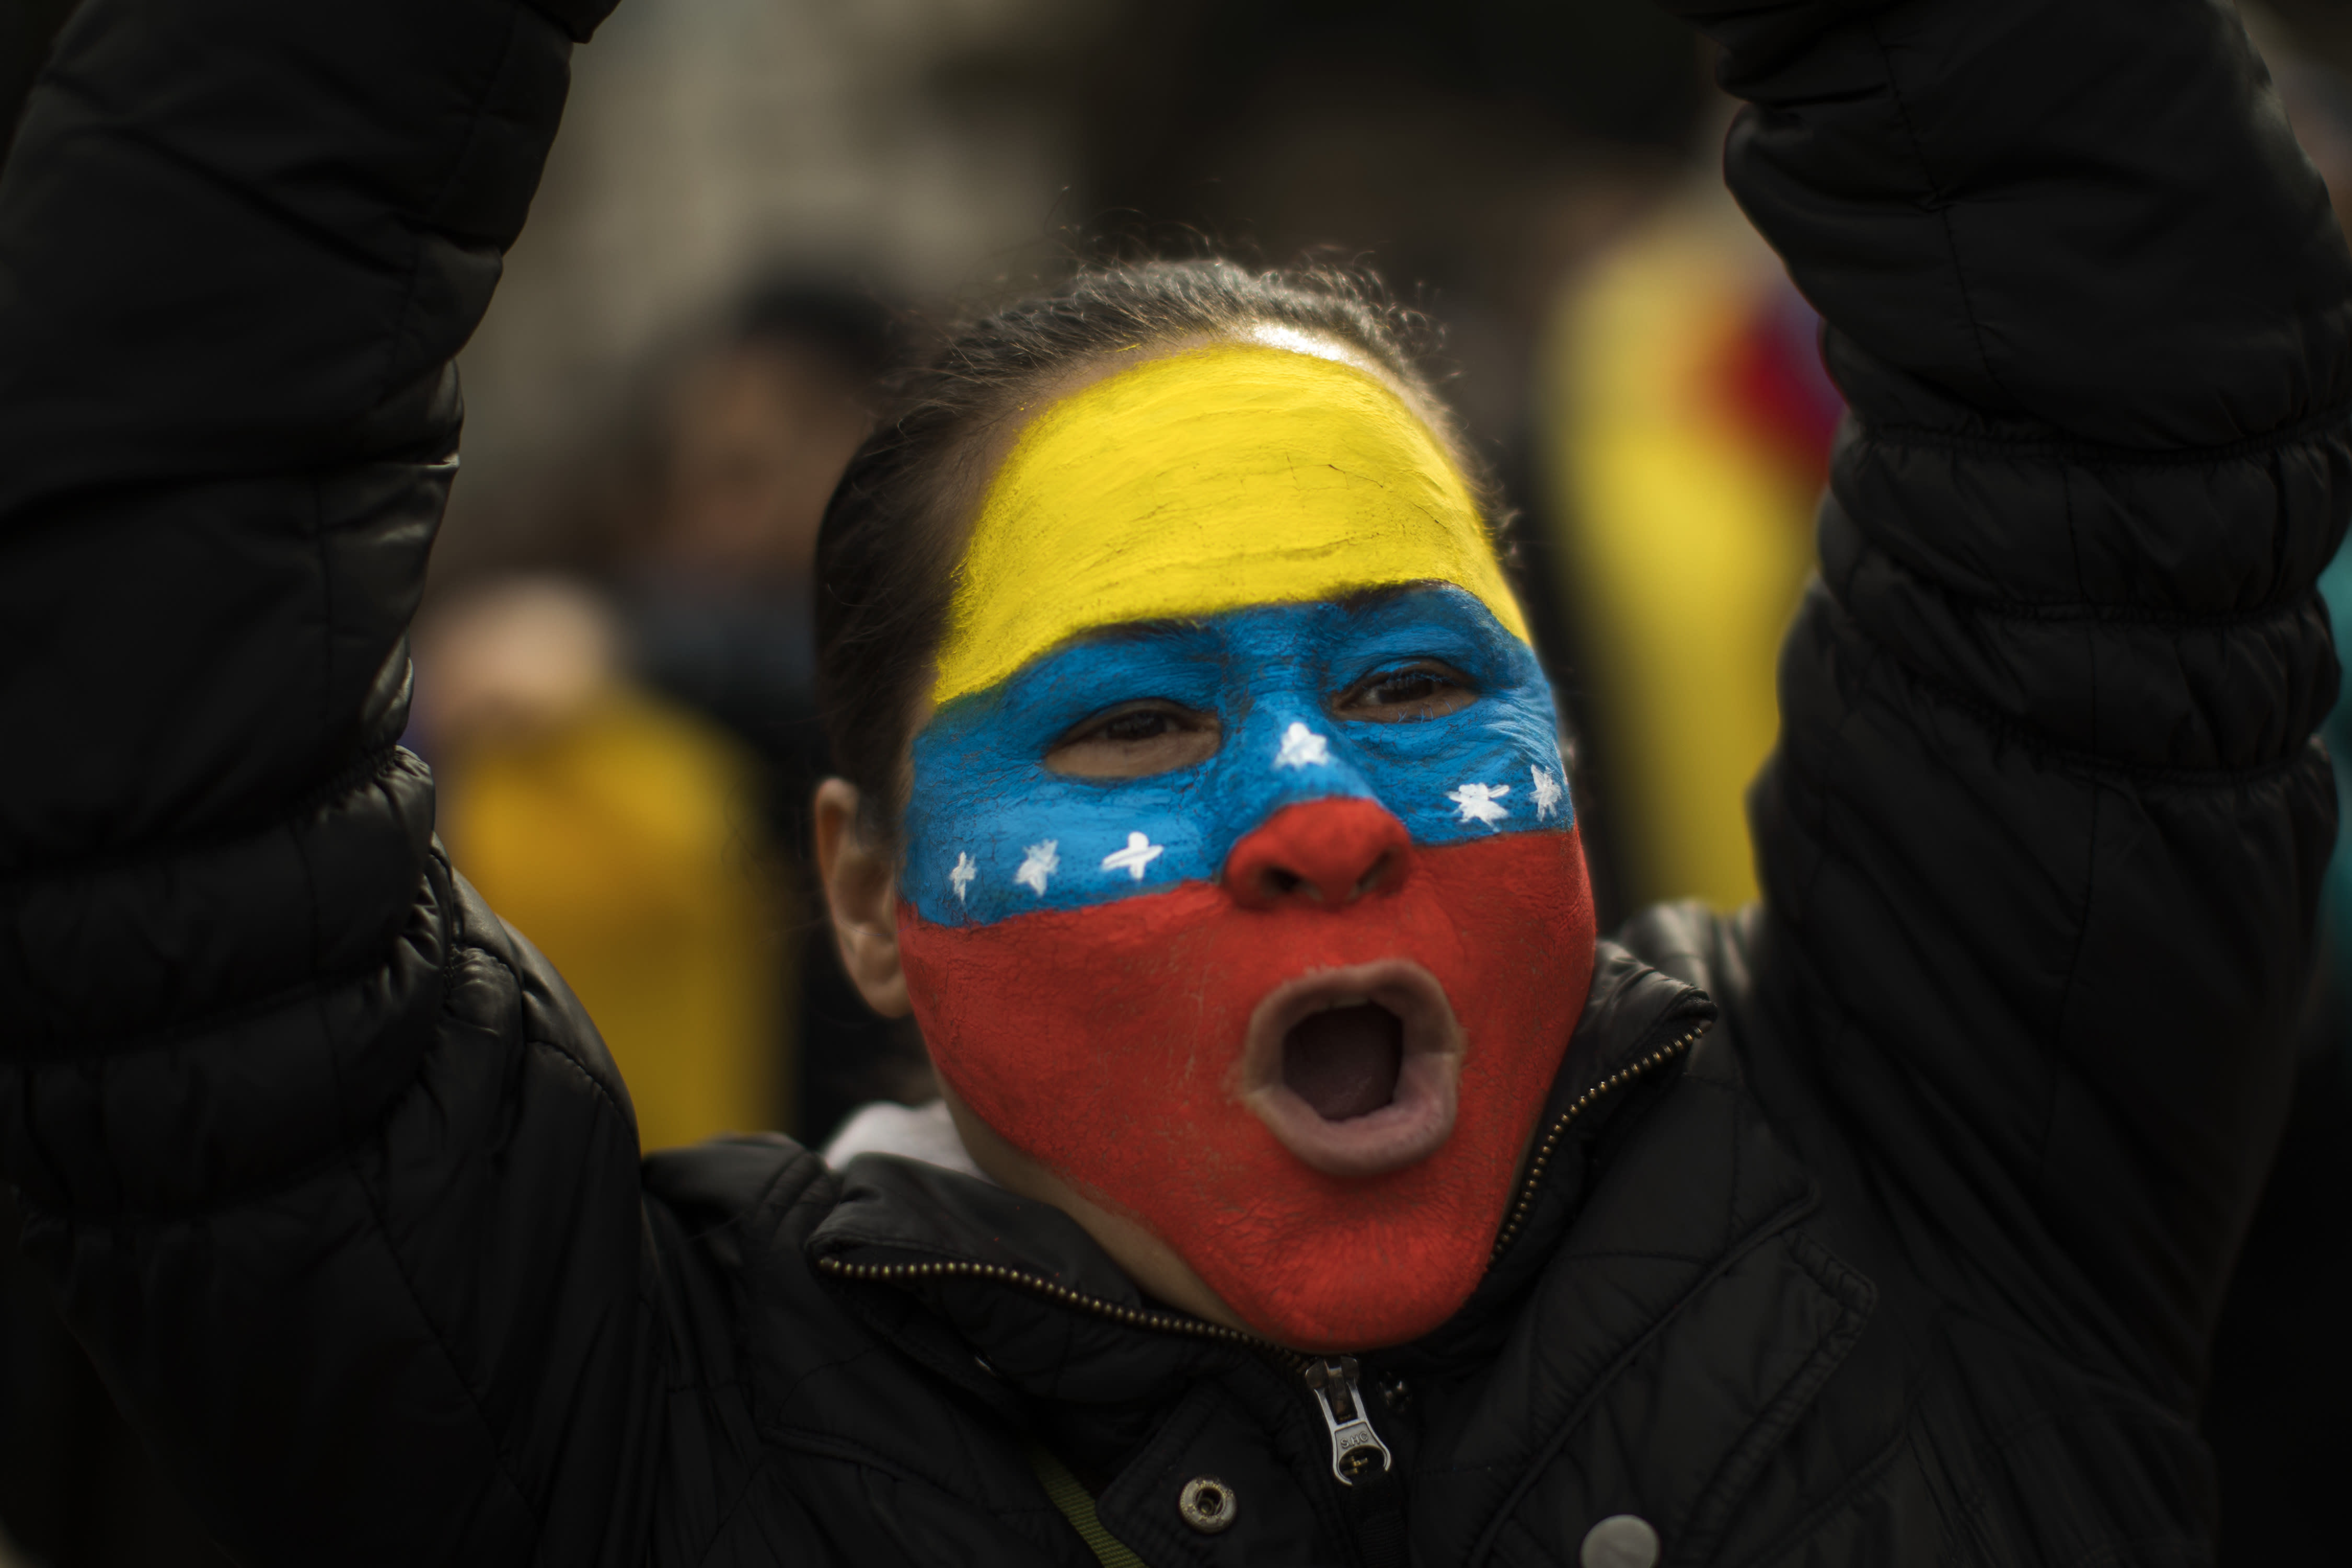 A Venezuelan woman shouts slogans as she takes part in a rally in Catalonia square, in Barcelona, Spain, Saturday, Feb. 2, 2019. Hundreds of Venezuelans gathered in downtown Barcelona, to express their support for Juan Guaido, who declared himself interim president of Venezuela last week. The gathering was one of several expected around the world to coincide with a rally planned by Guaido in Venezuela. (AP Photo/Emilio Morenatti)